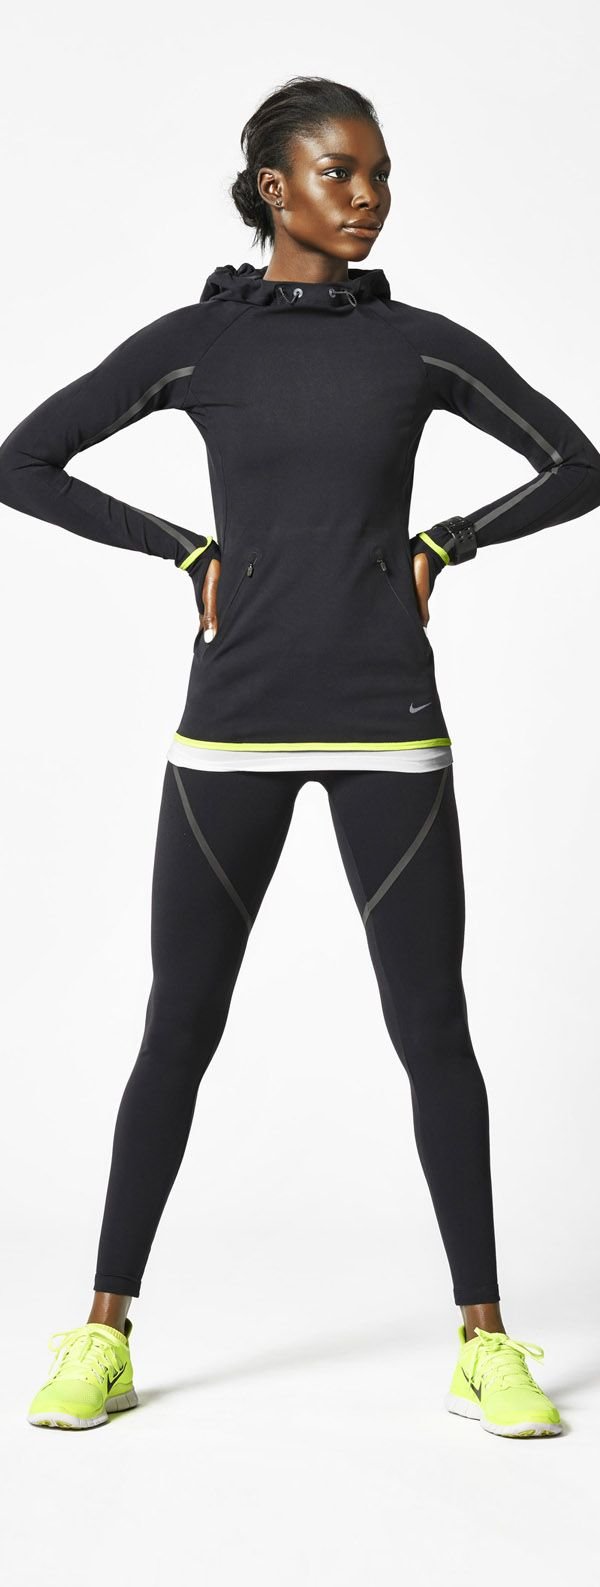 plus récent 343c0 500d2 Push your limits. #Nike #running #style - Sports et ...